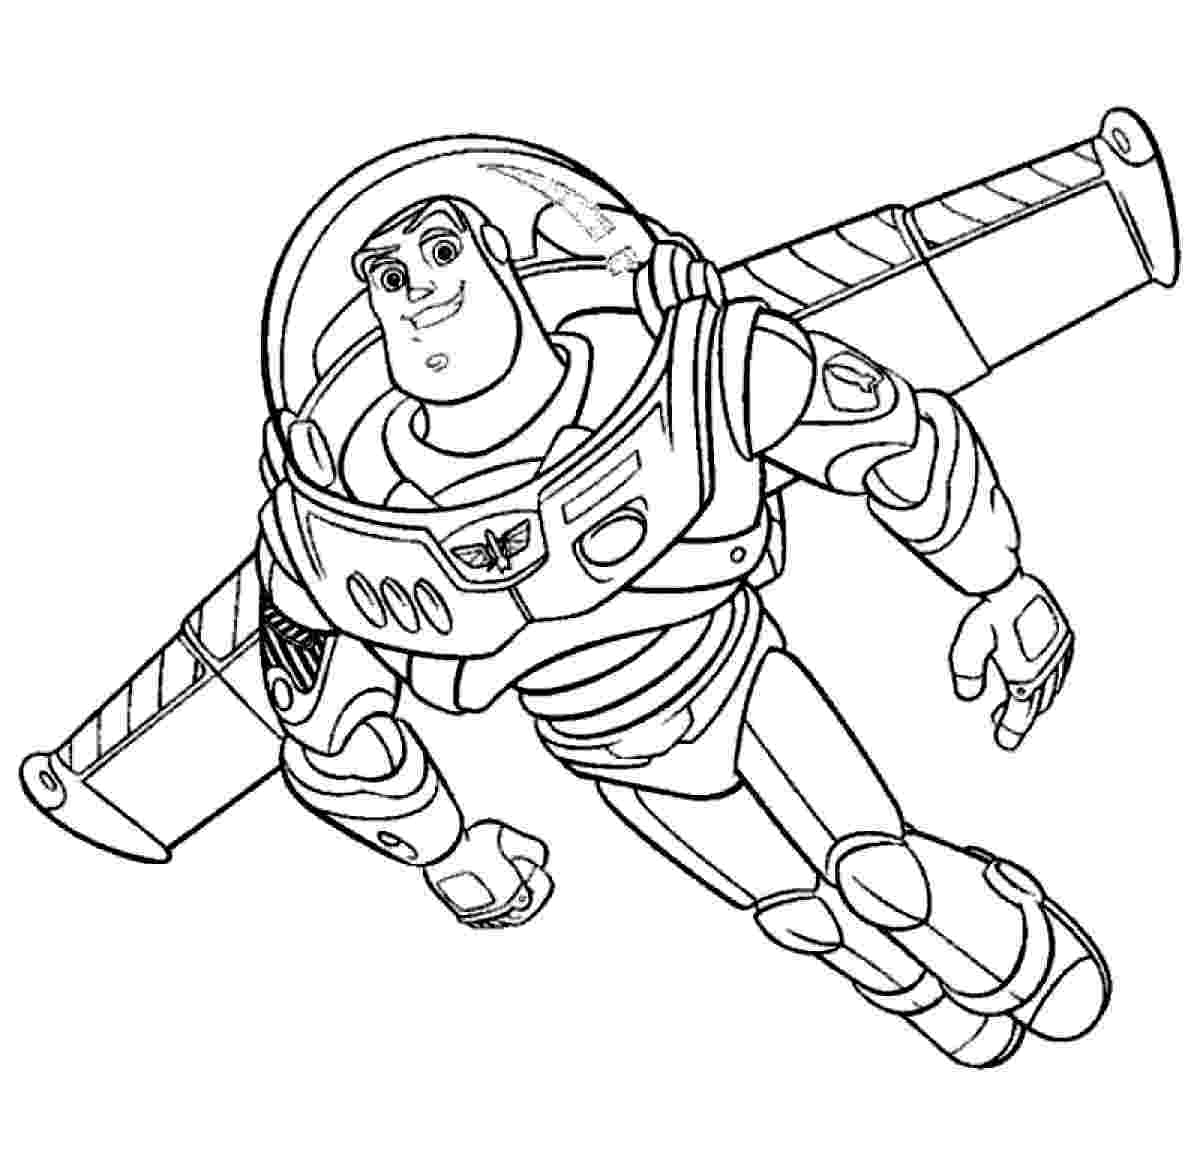 buzz lightyear coloring pages free printable buzz lightyear coloring pages for kids lightyear pages buzz coloring